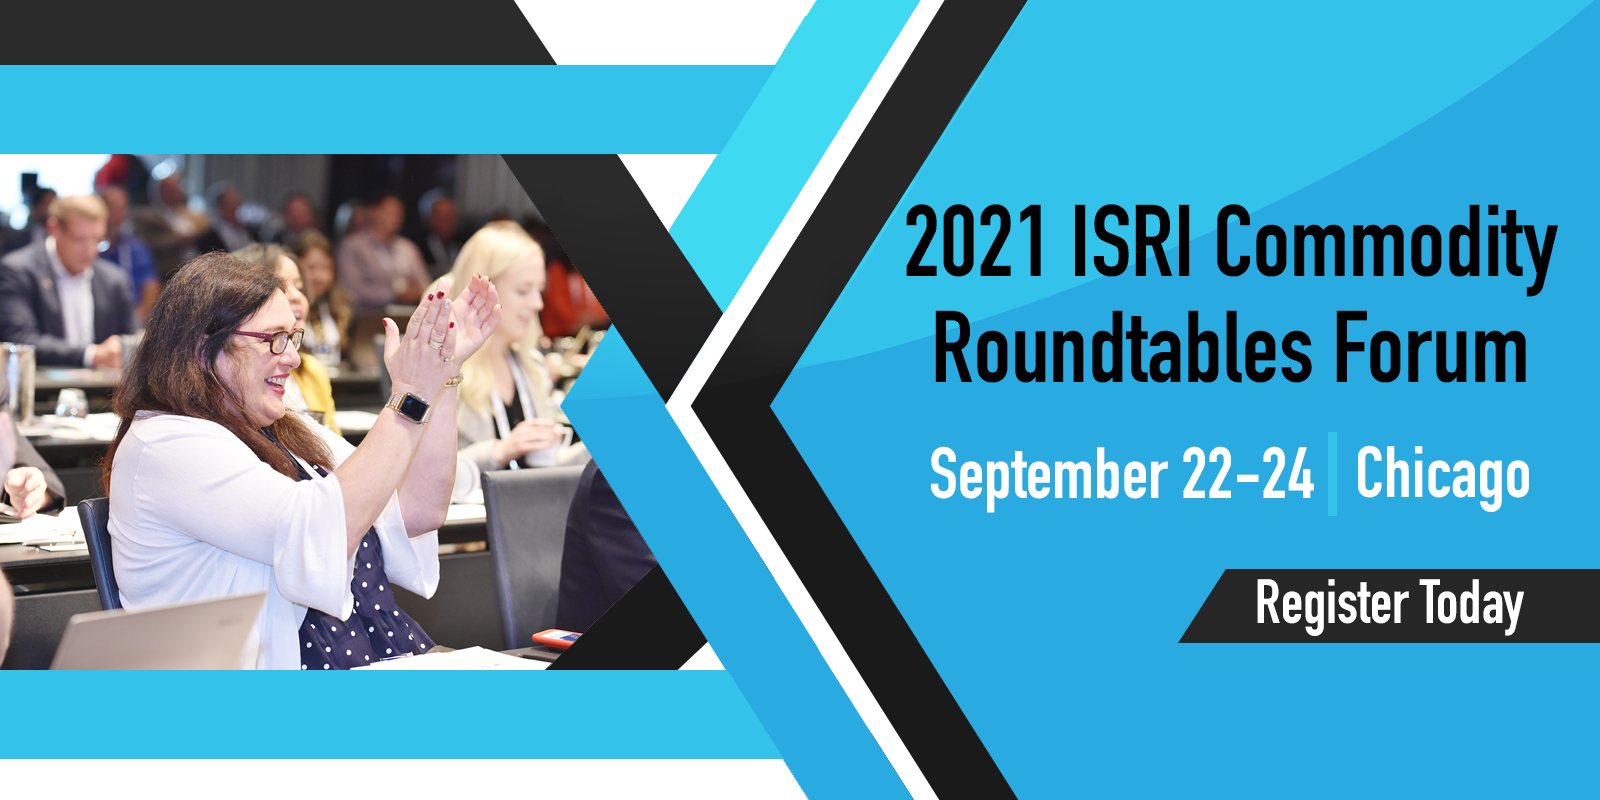 ISRI Commodity Roundtables Forum Makes In-Person Return